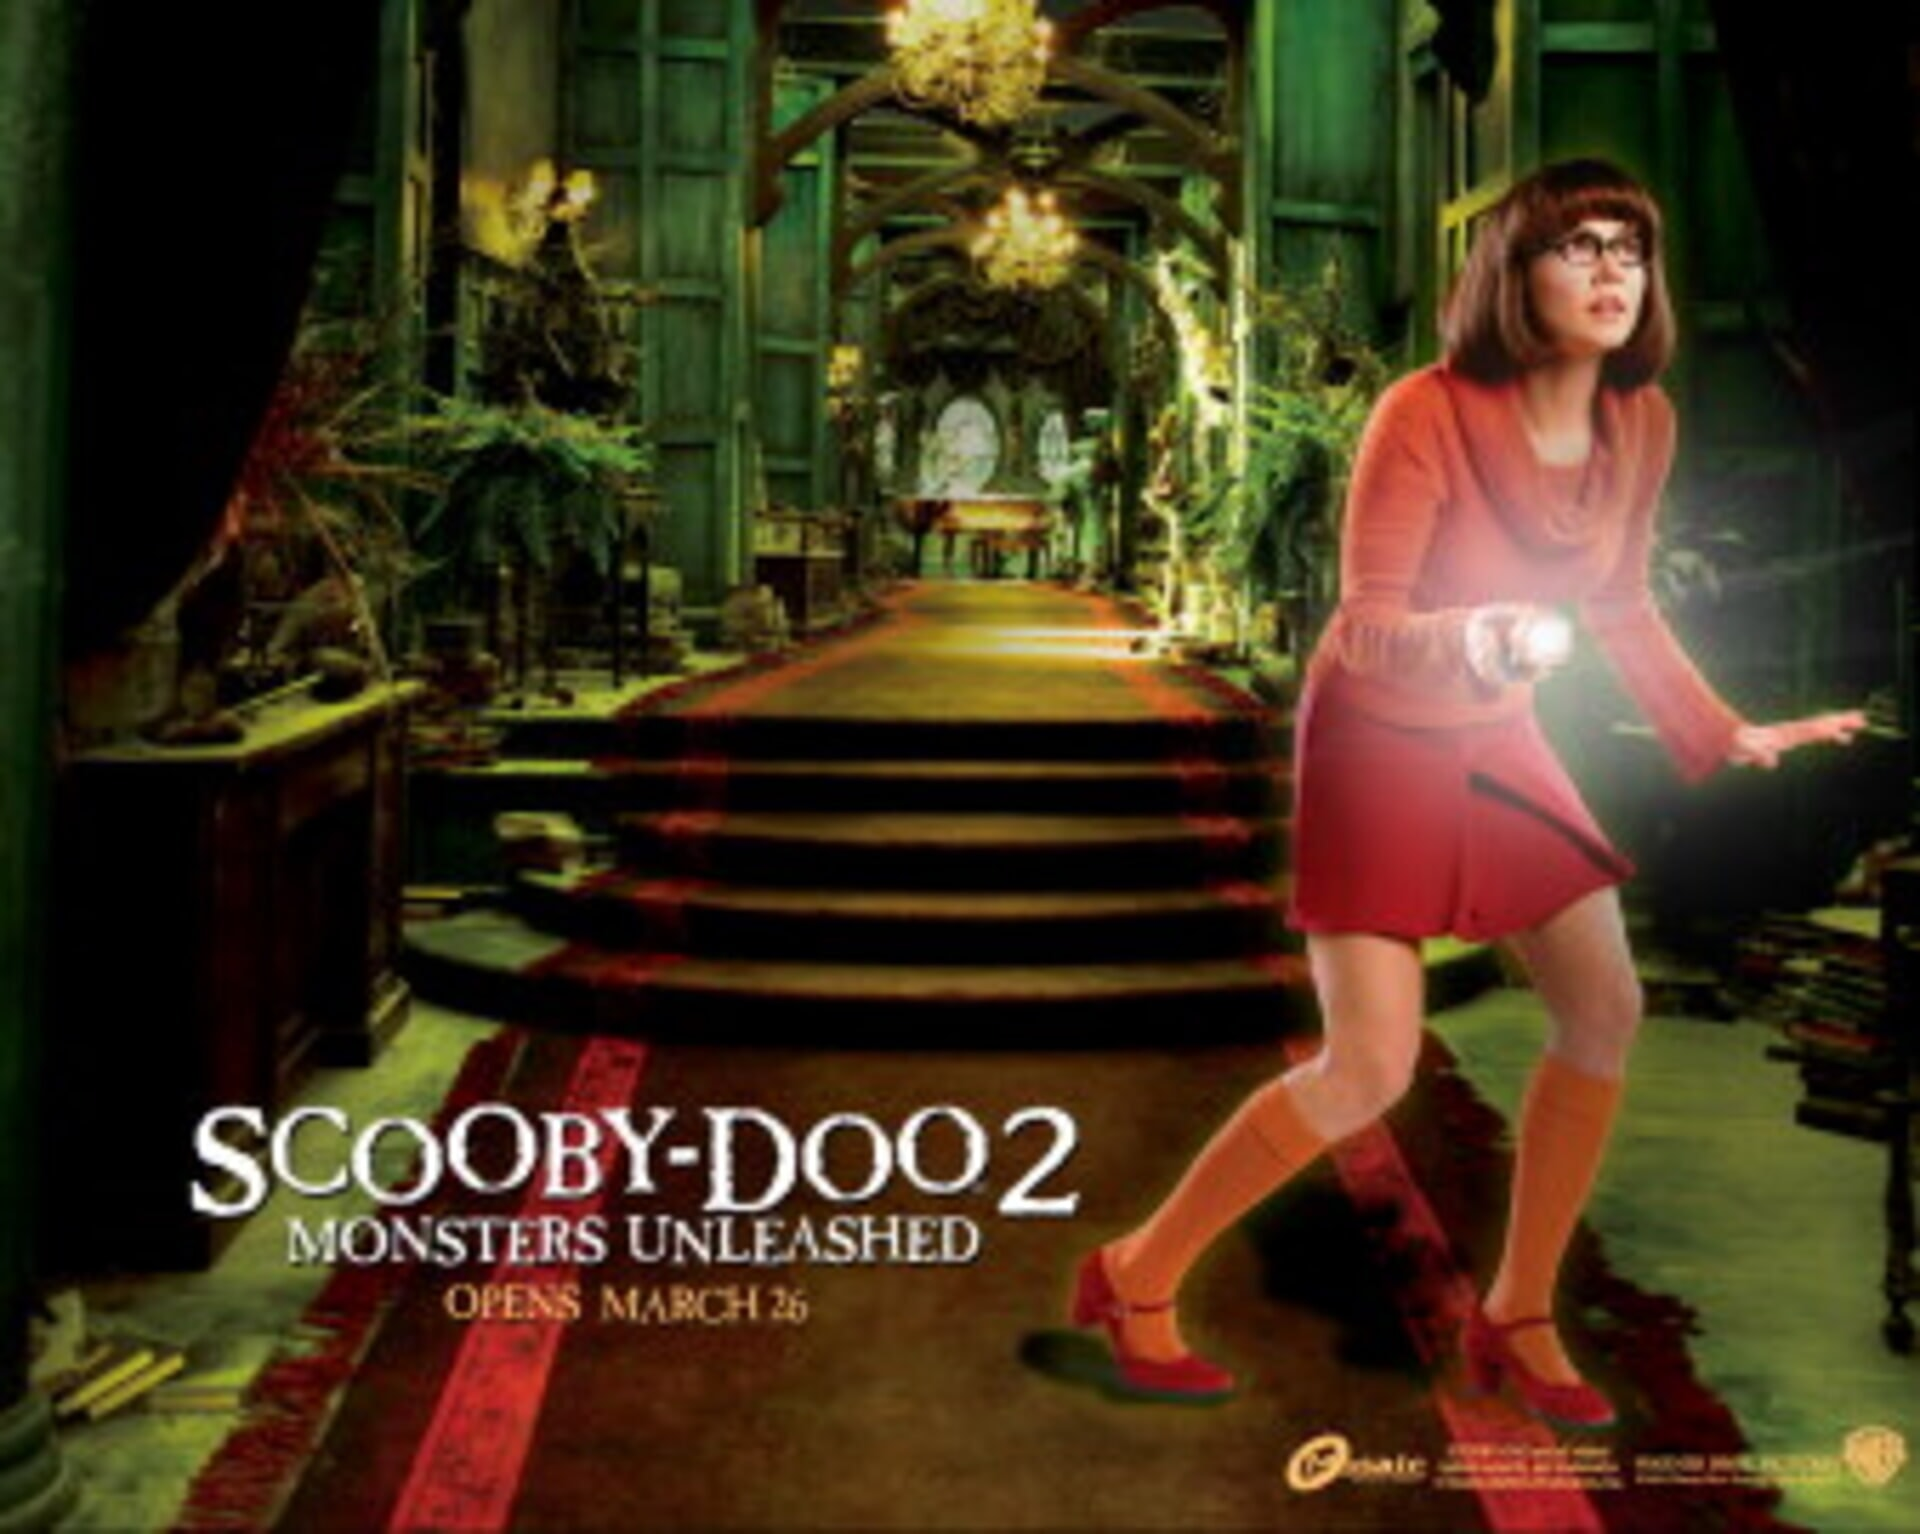 Scooby-Doo 2: Monsters Unleashed - Image 10